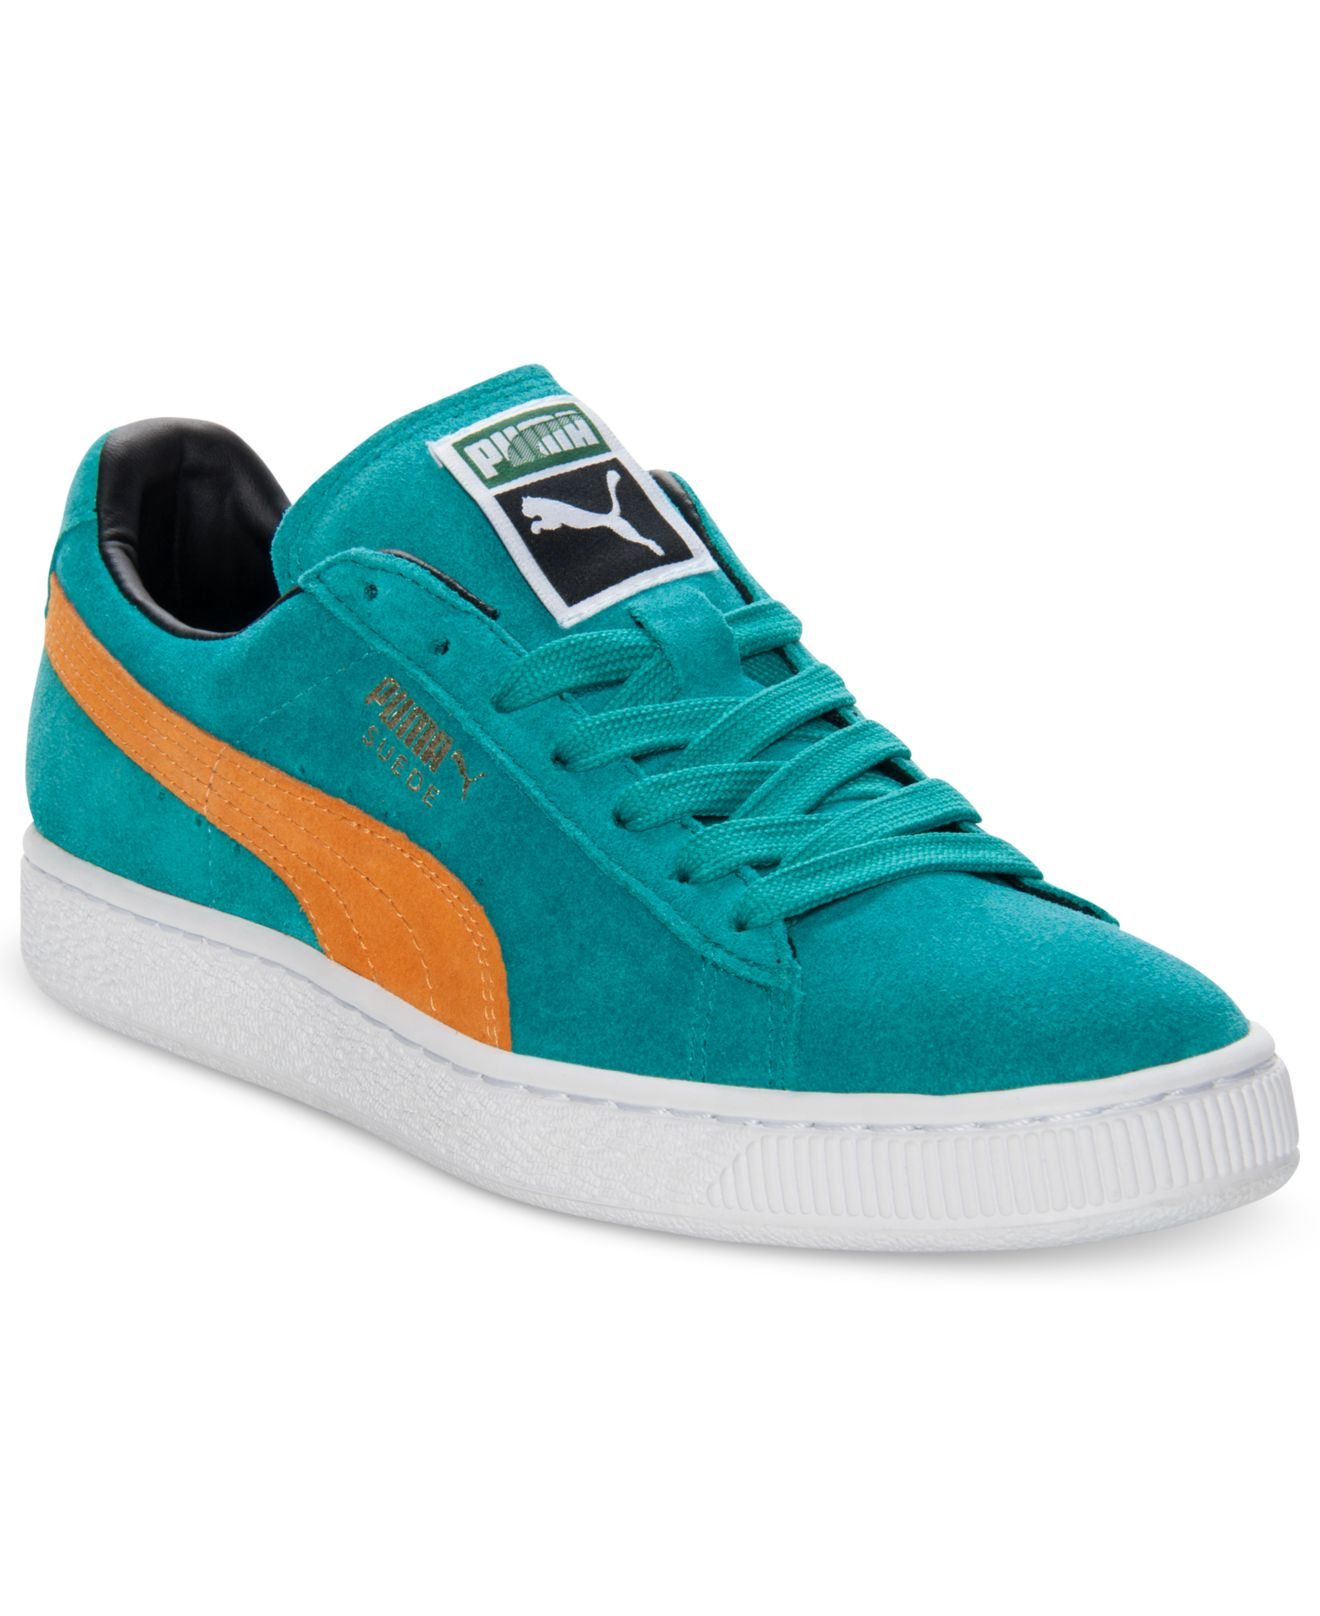 Lyst - PUMA Men S Suede Classic Casual Sneakers From Finish Line in ... 68d33bf58